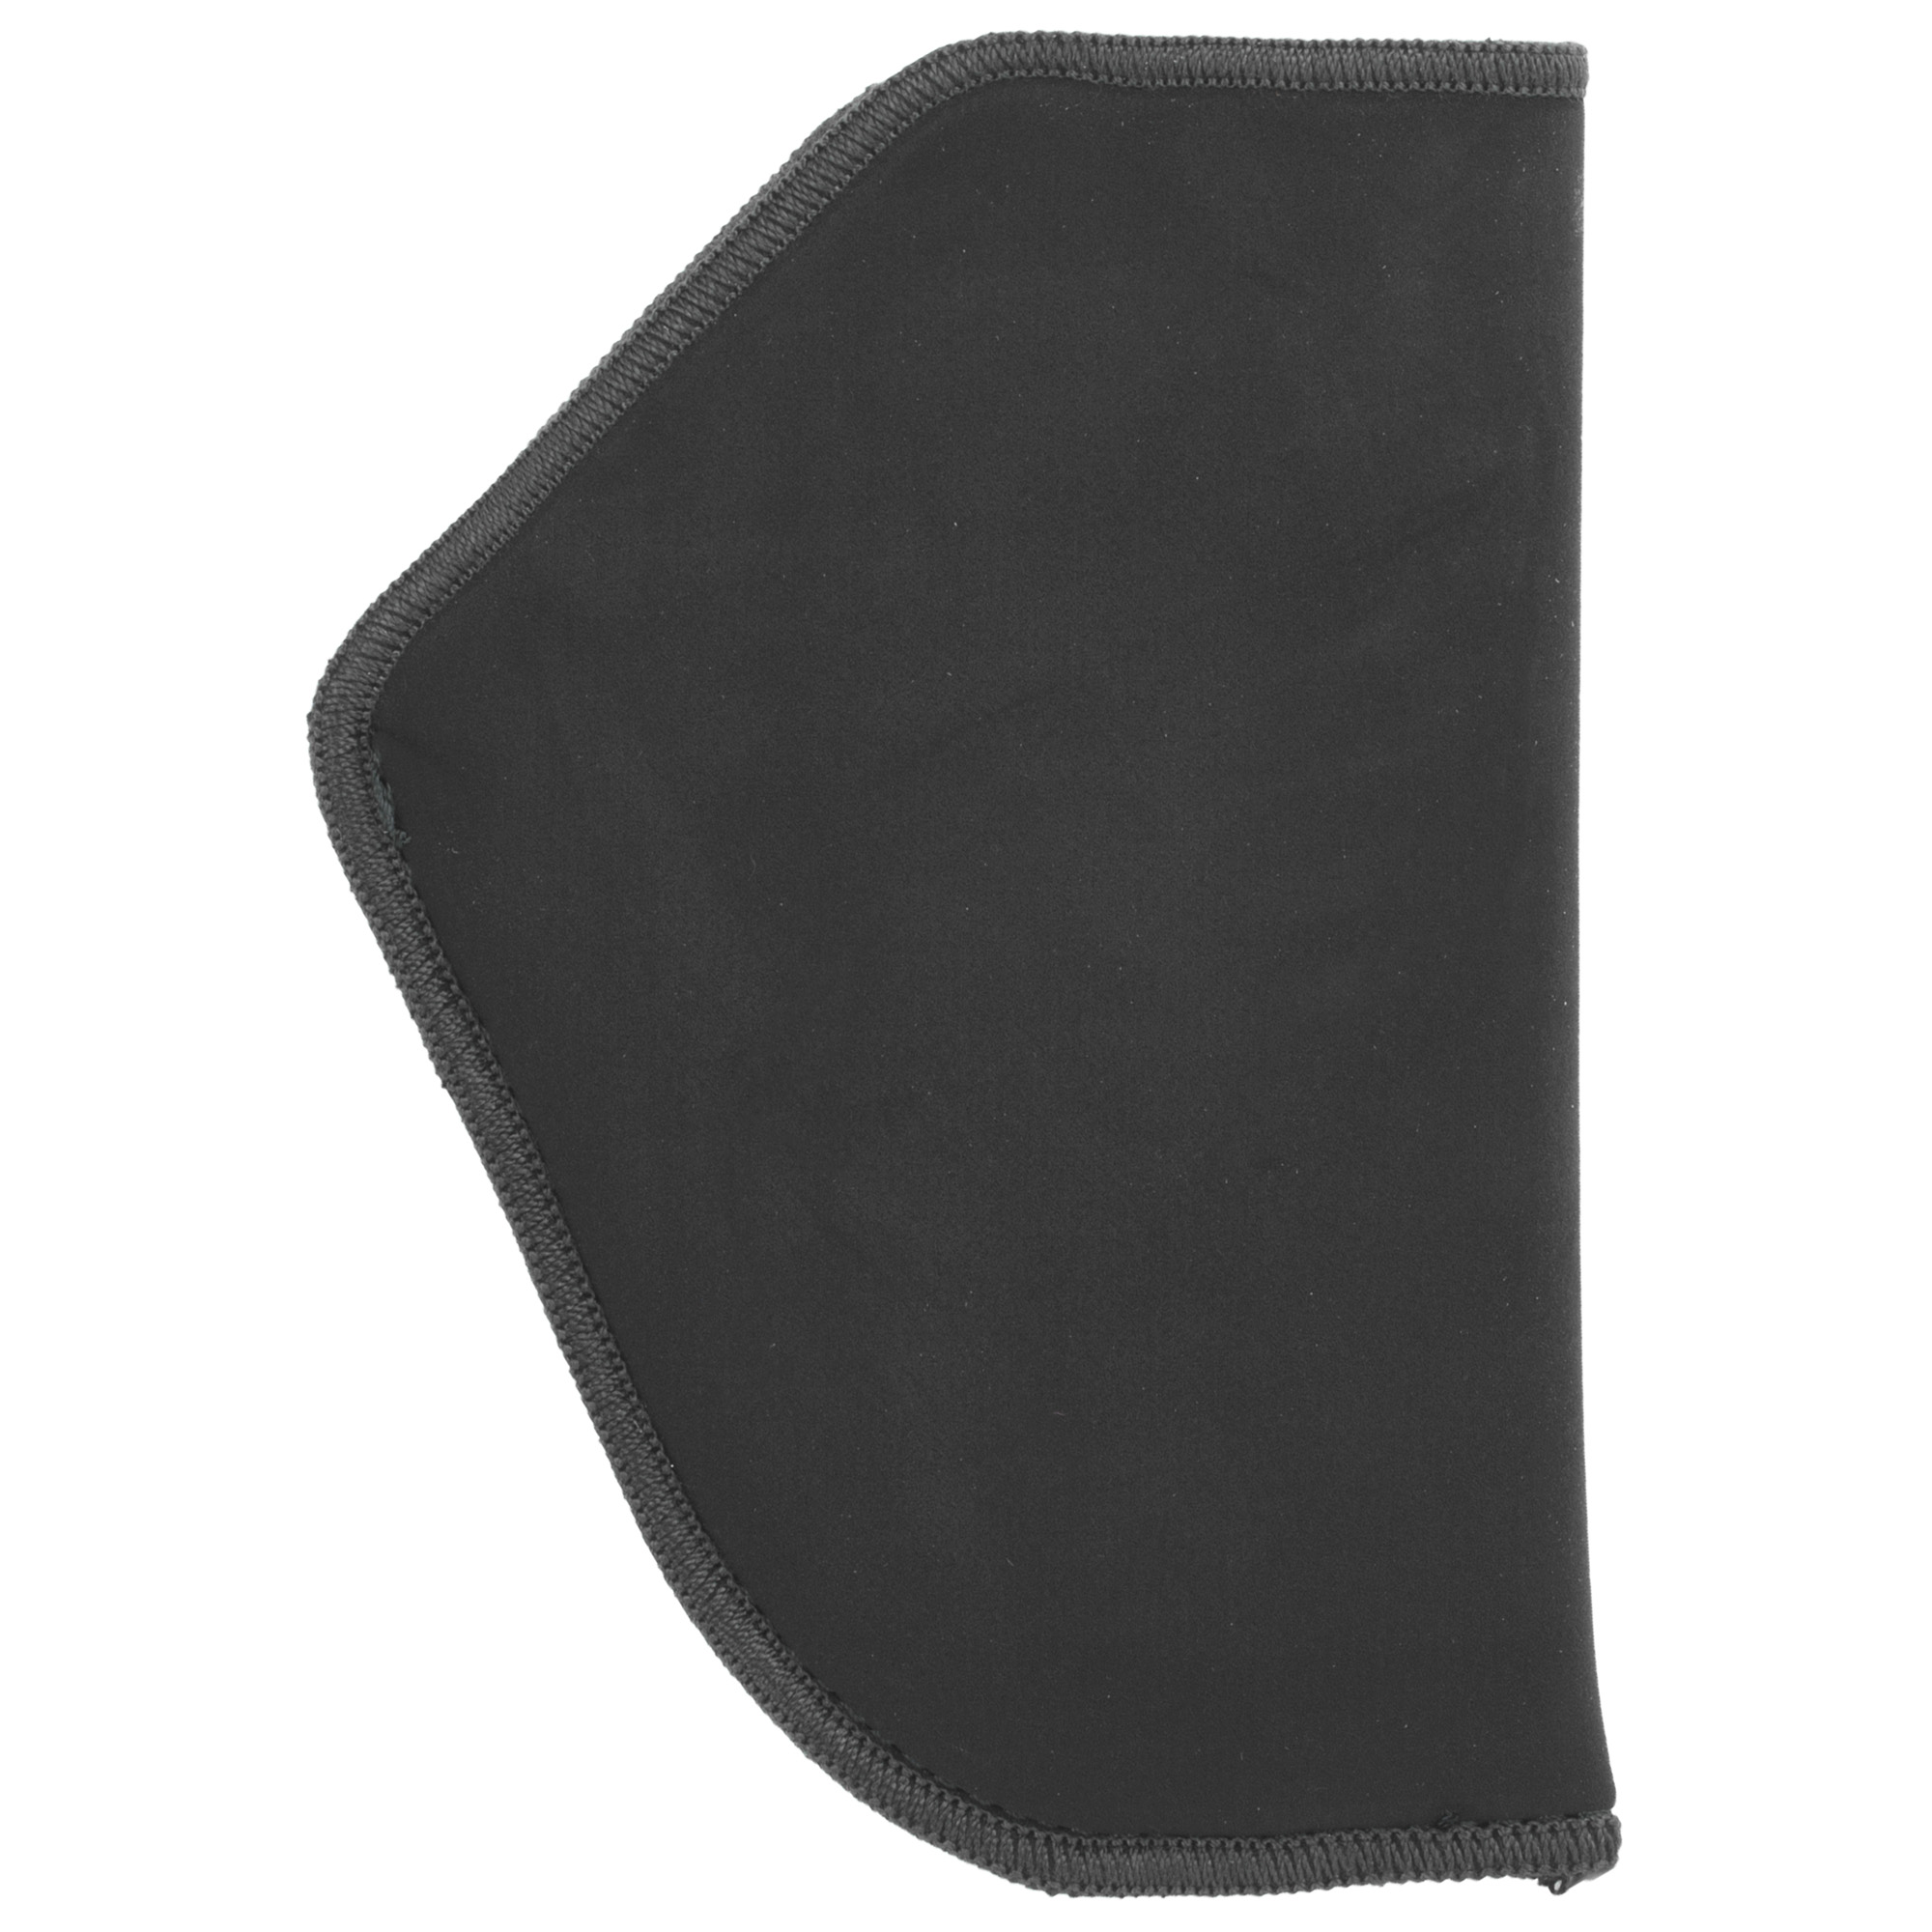 Blackhawk's popular inside-the-pants design is soft to the touch and easy to draw thanks to its laminate suede-like outer shell and smooth nylon lining.